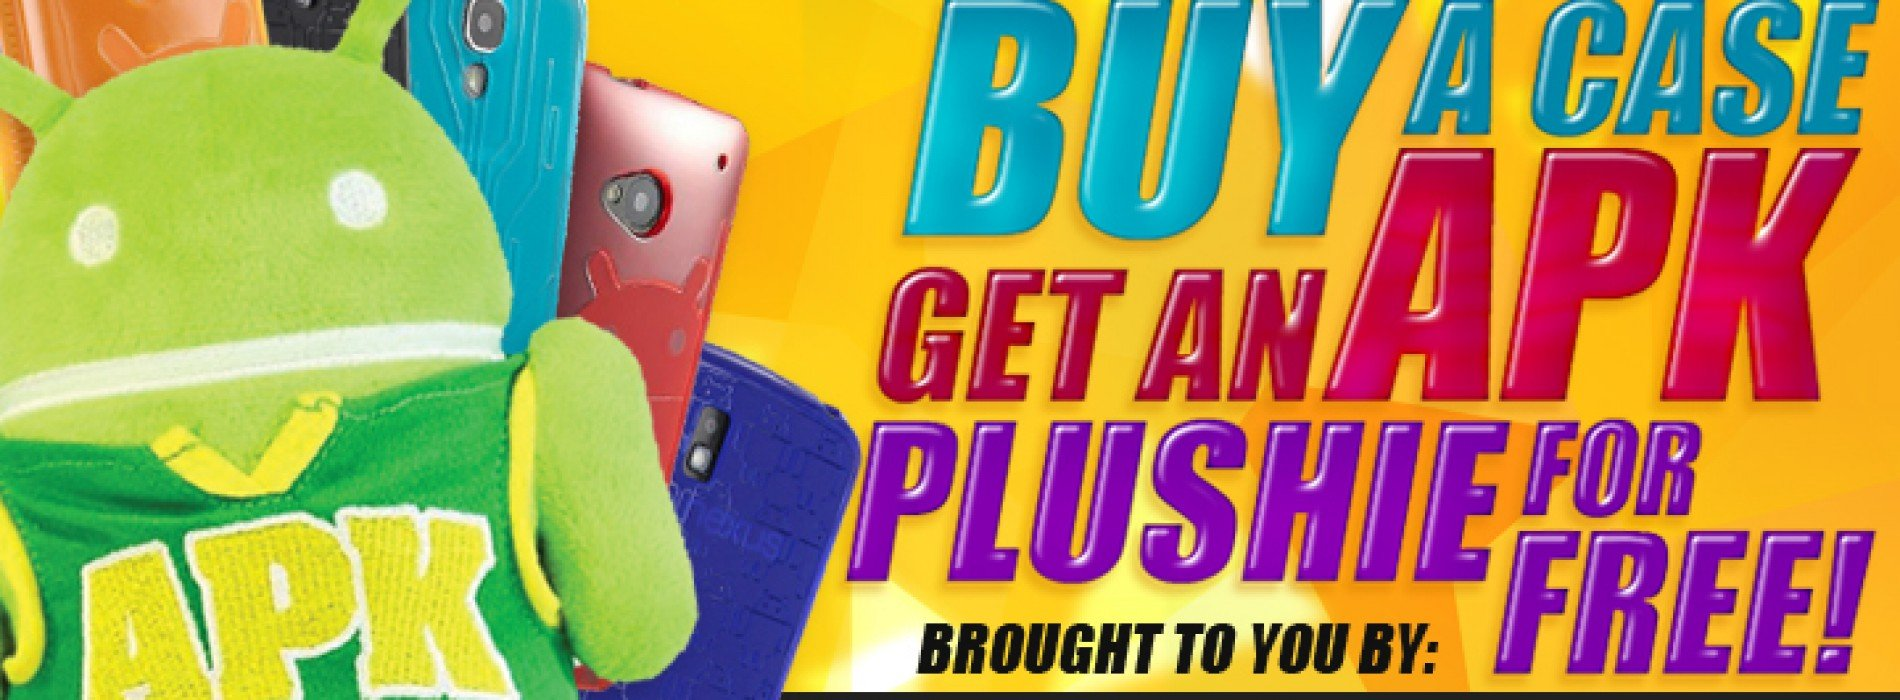 Three days only: Buy a Cruzerlite case, get a free plushie!